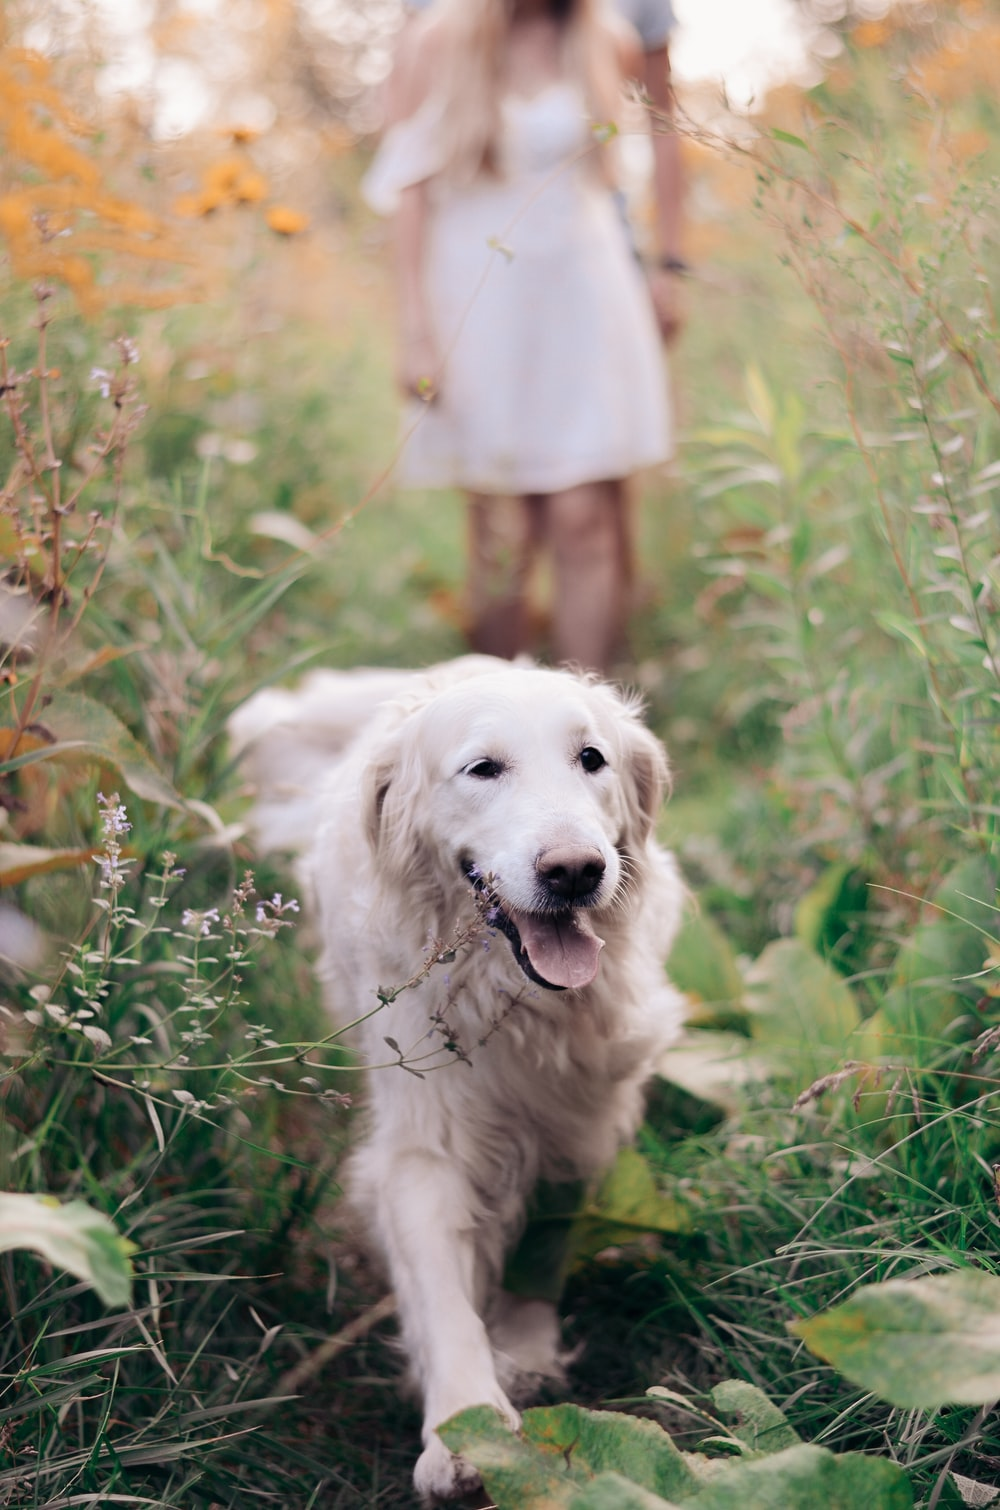 long-coated white dog walking on grass field